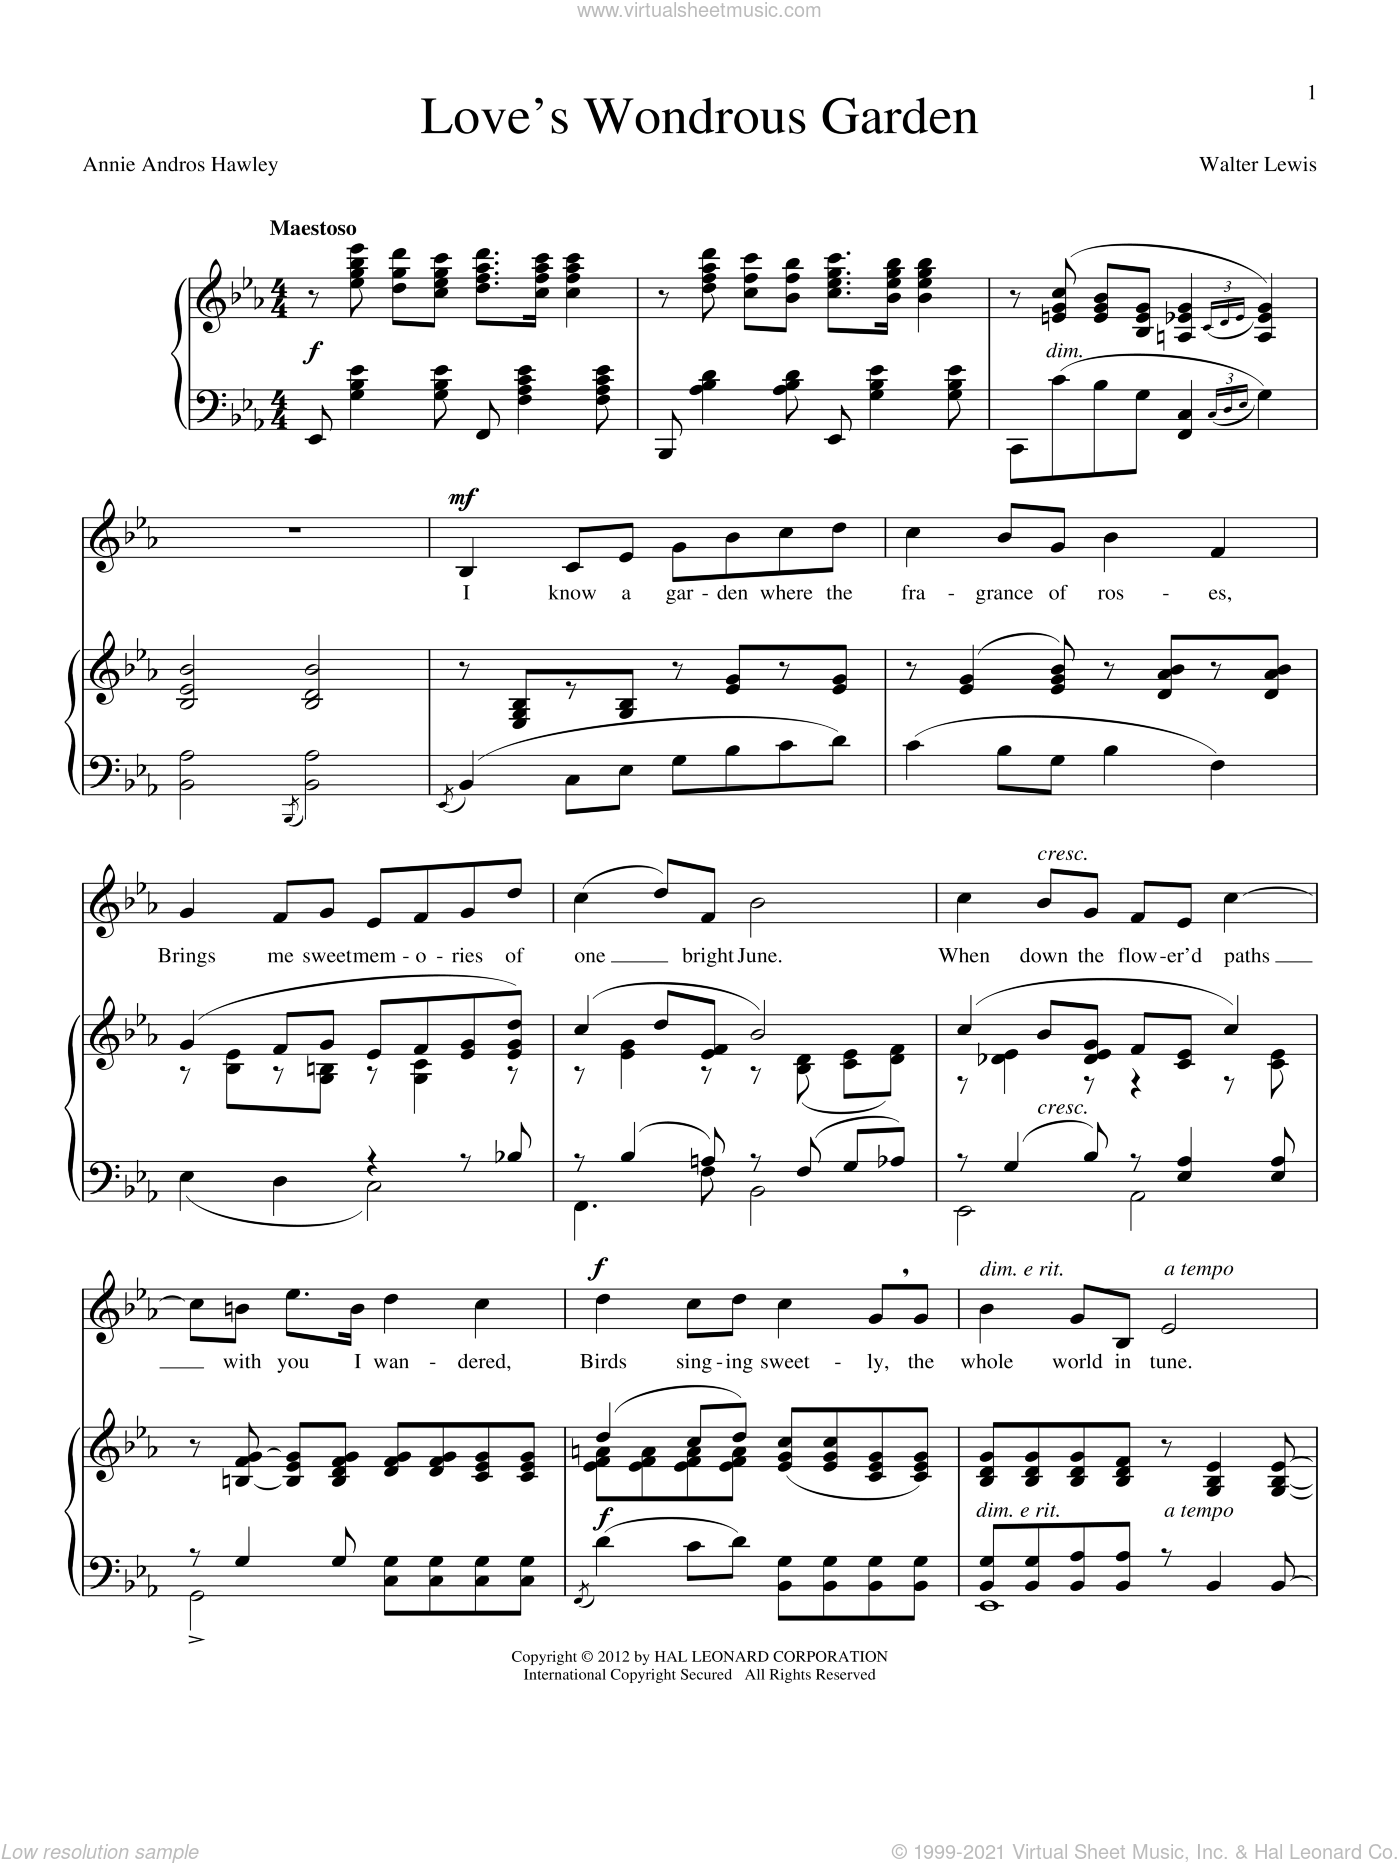 Love's Wondrous Garden sheet music for voice and piano by Walter Lewis